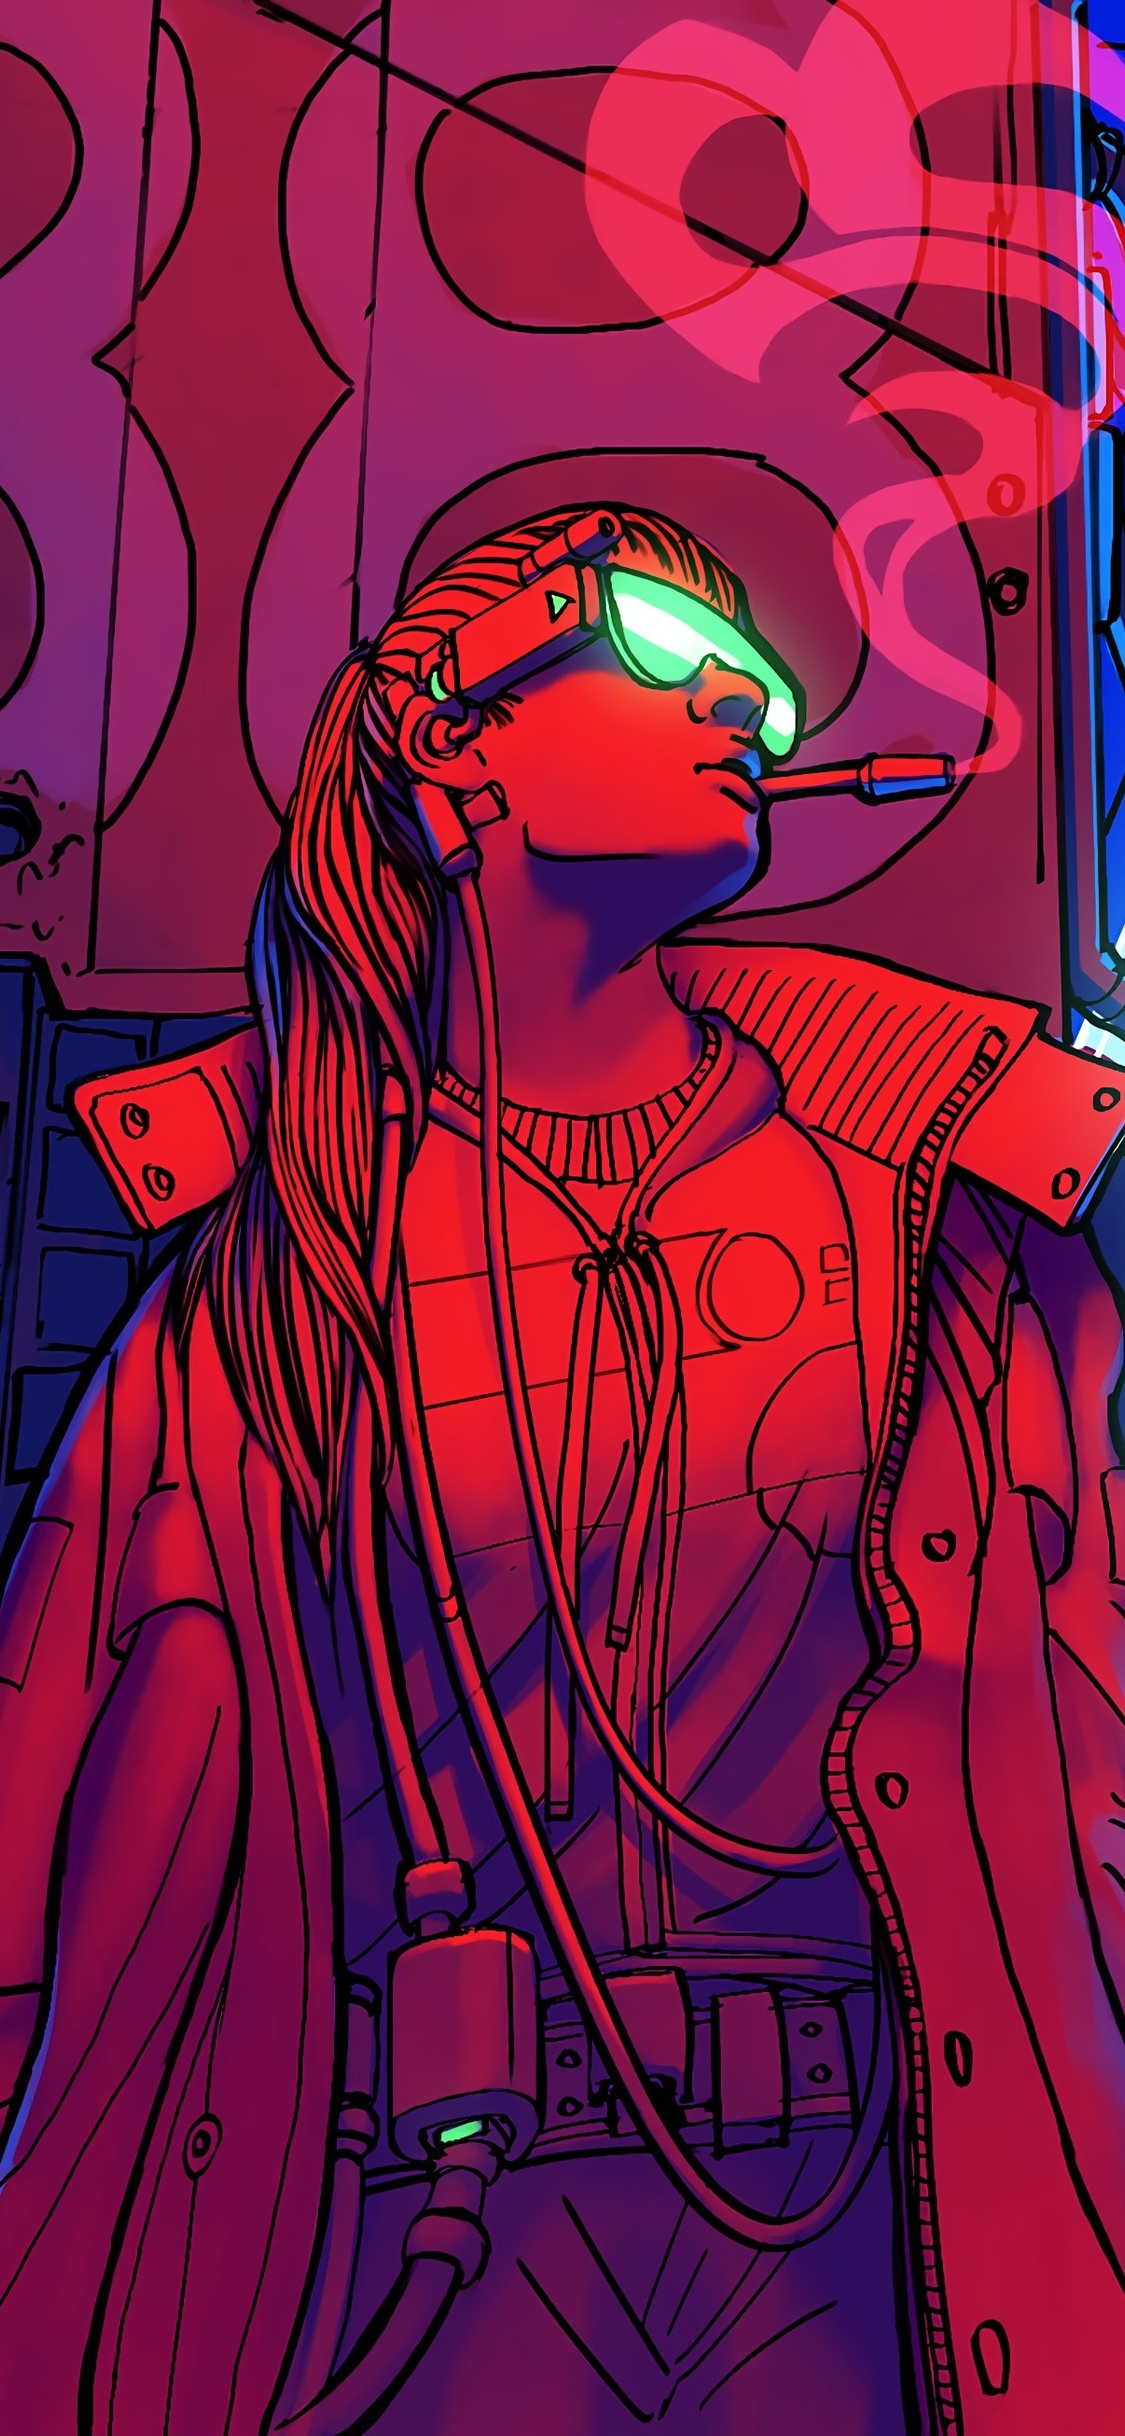 1125x2436 Cyberpunk Smoking Girl 4k Iphone Xs Iphone 10